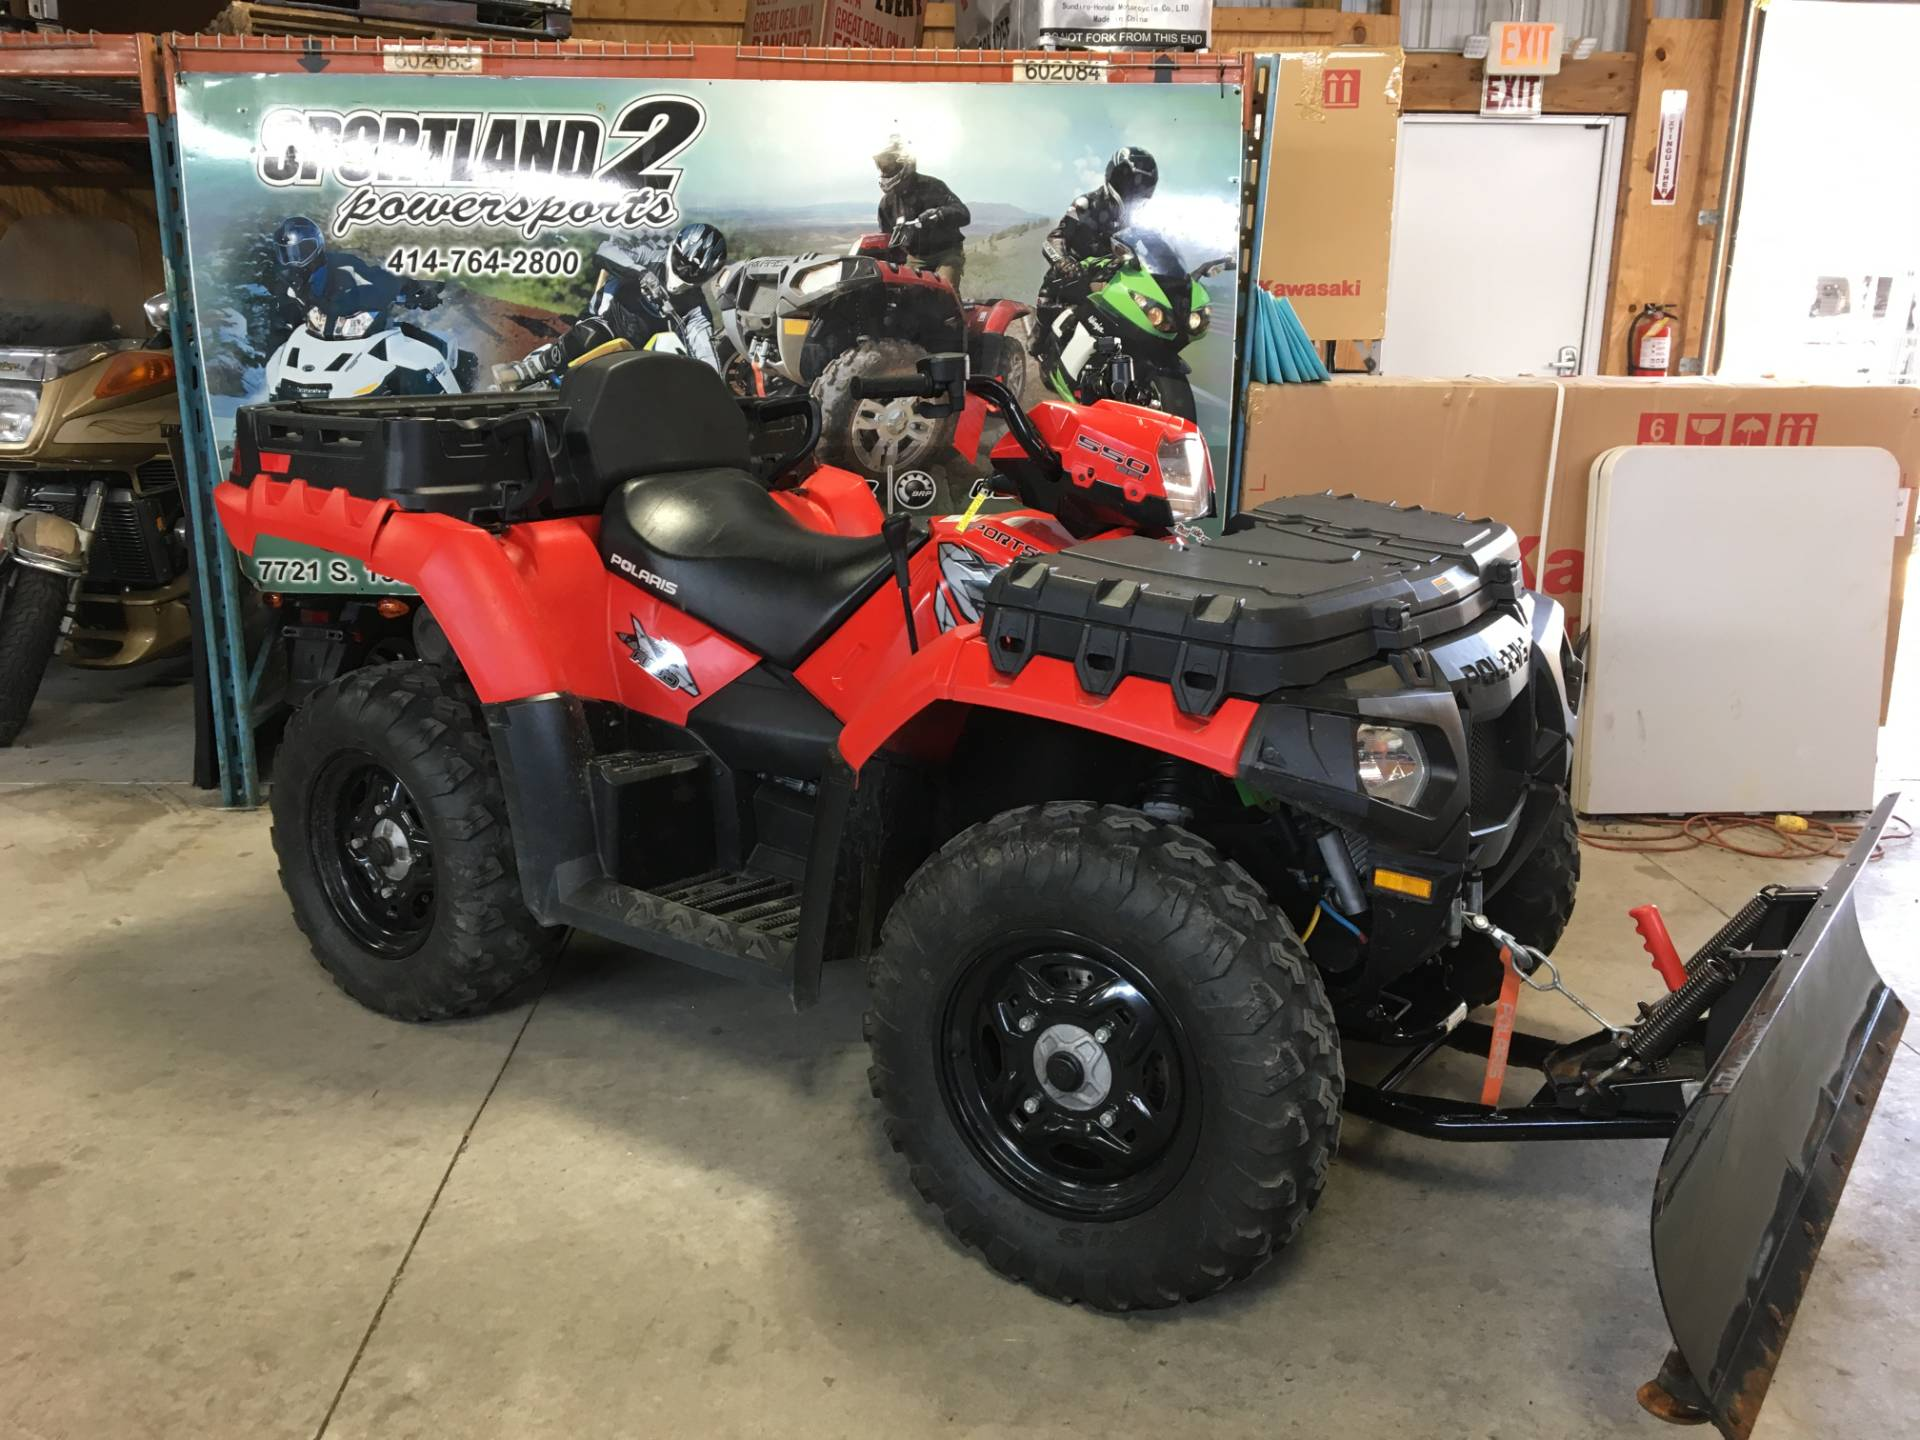 2010 Polaris Sportsman® 550 X2 in Oak Creek, Wisconsin - Photo 4